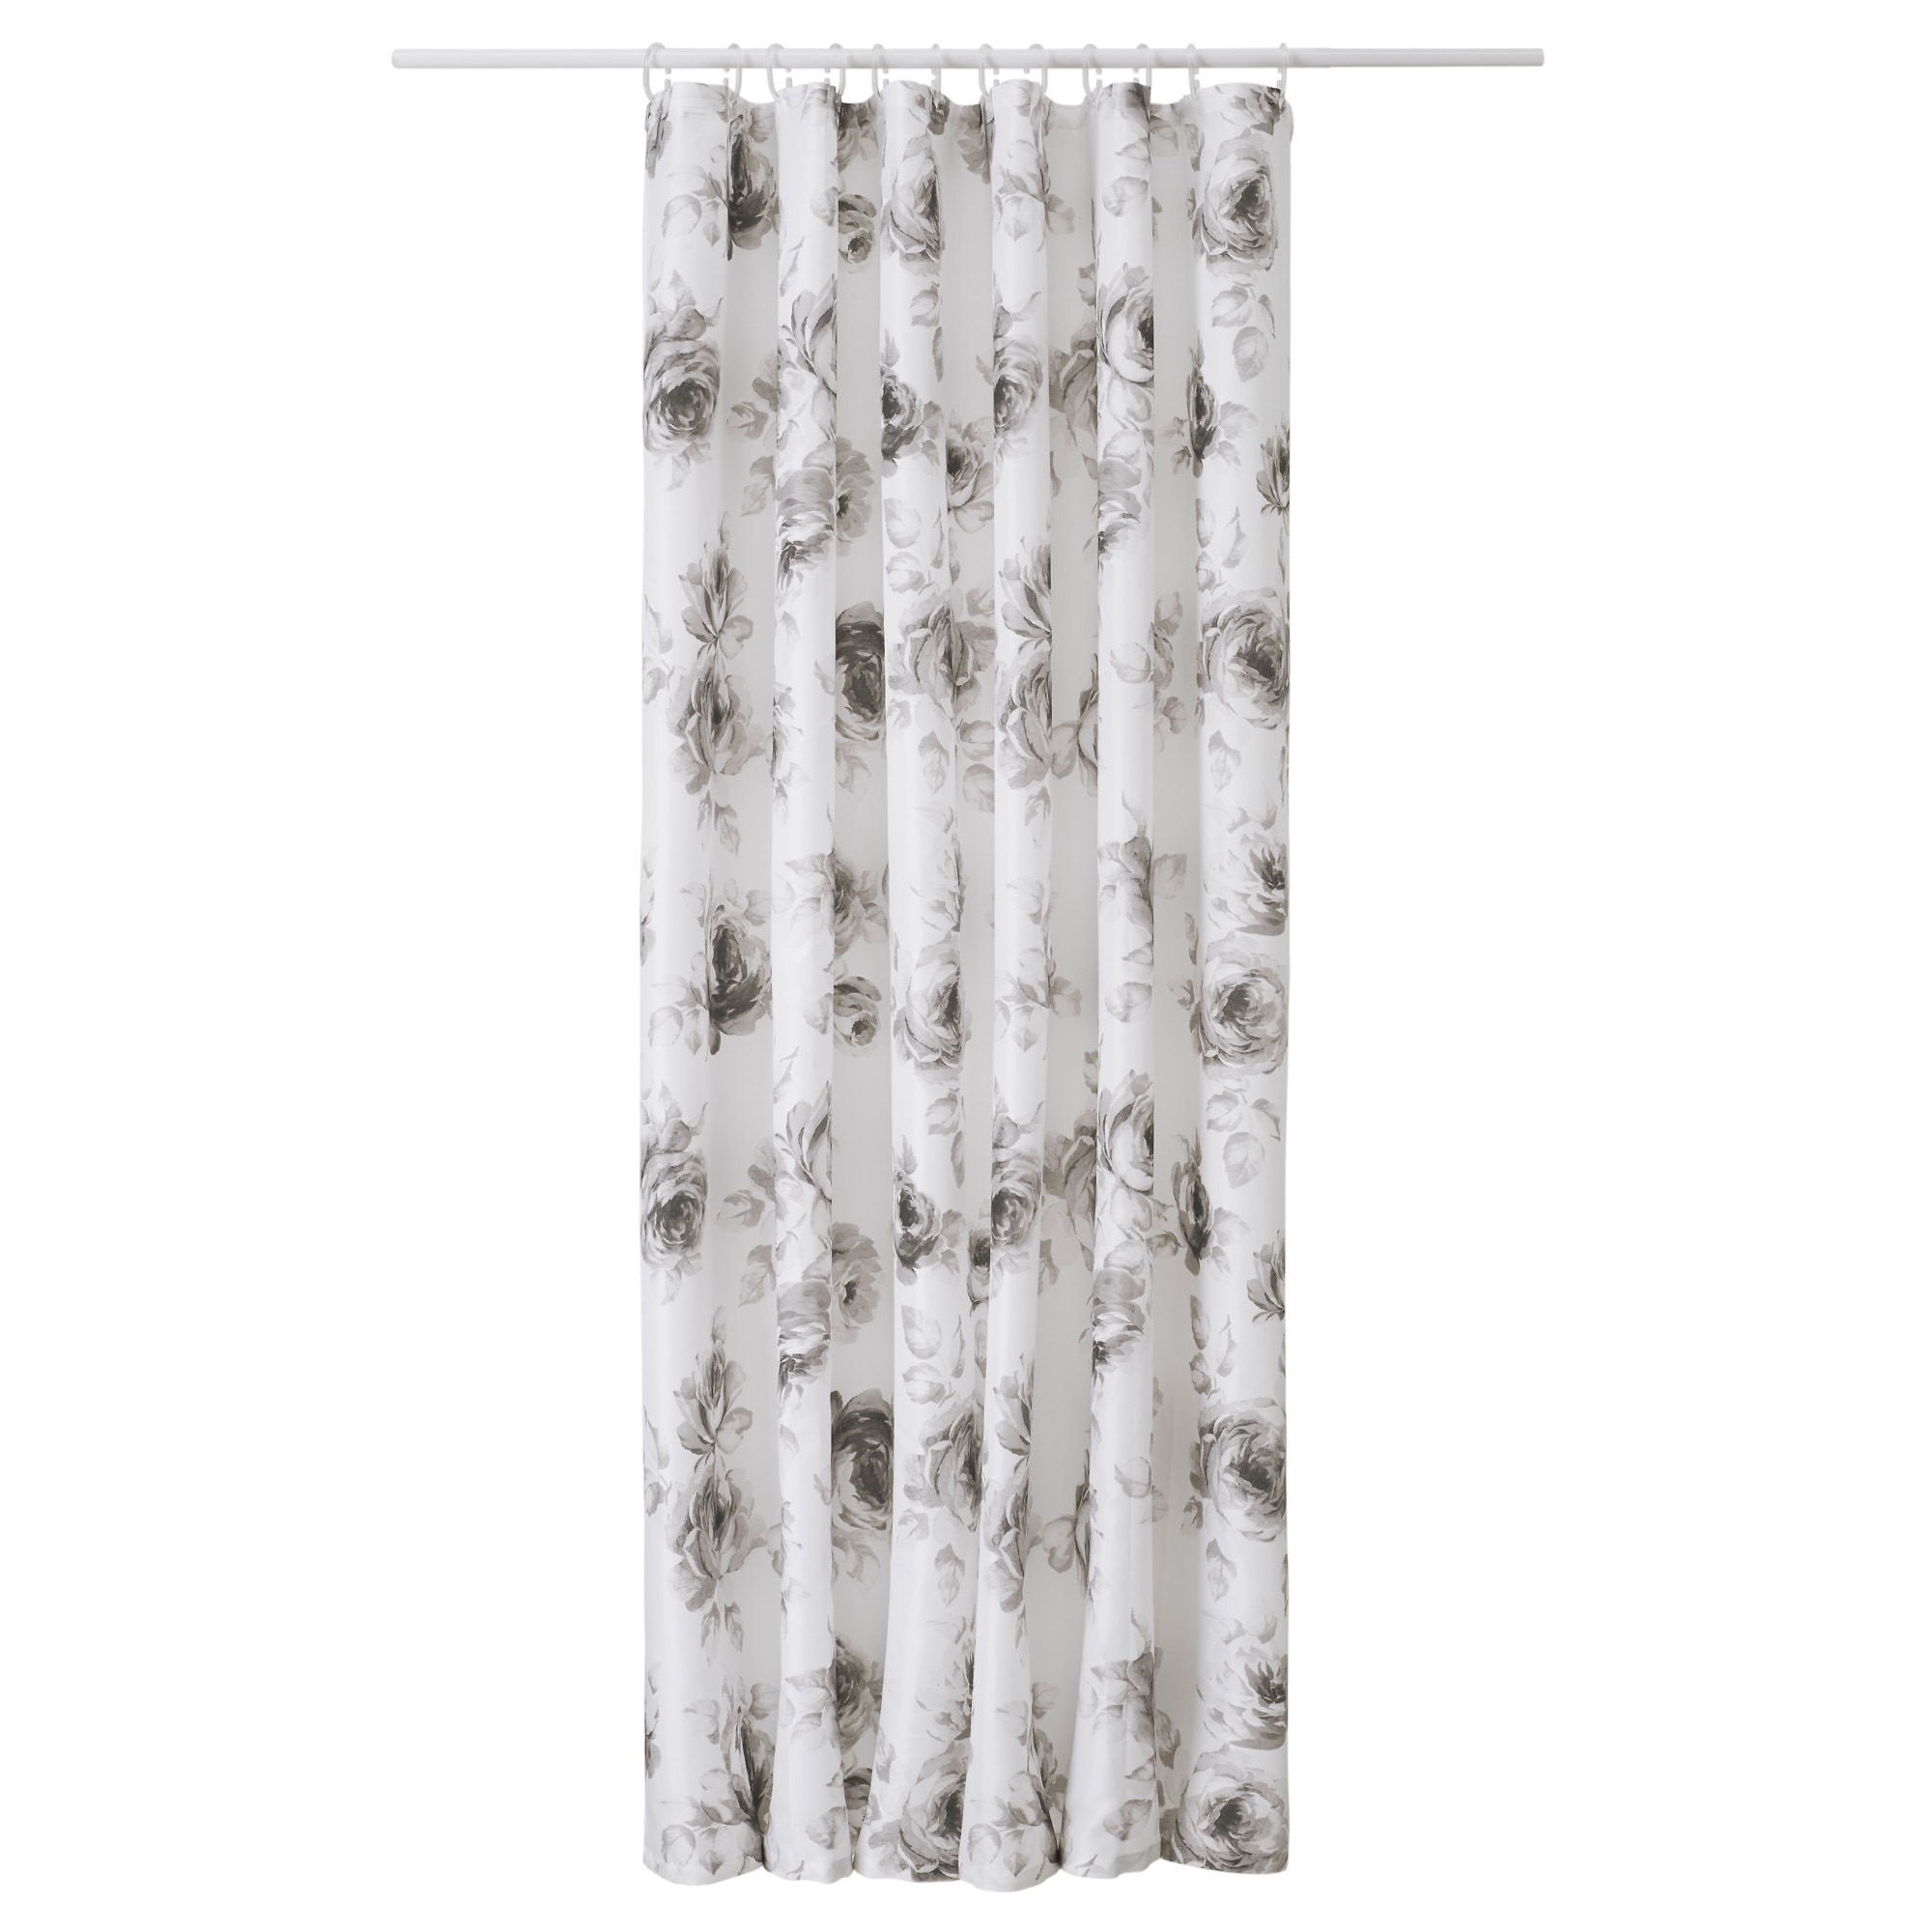 Aggersund Shower Curtain Ikea